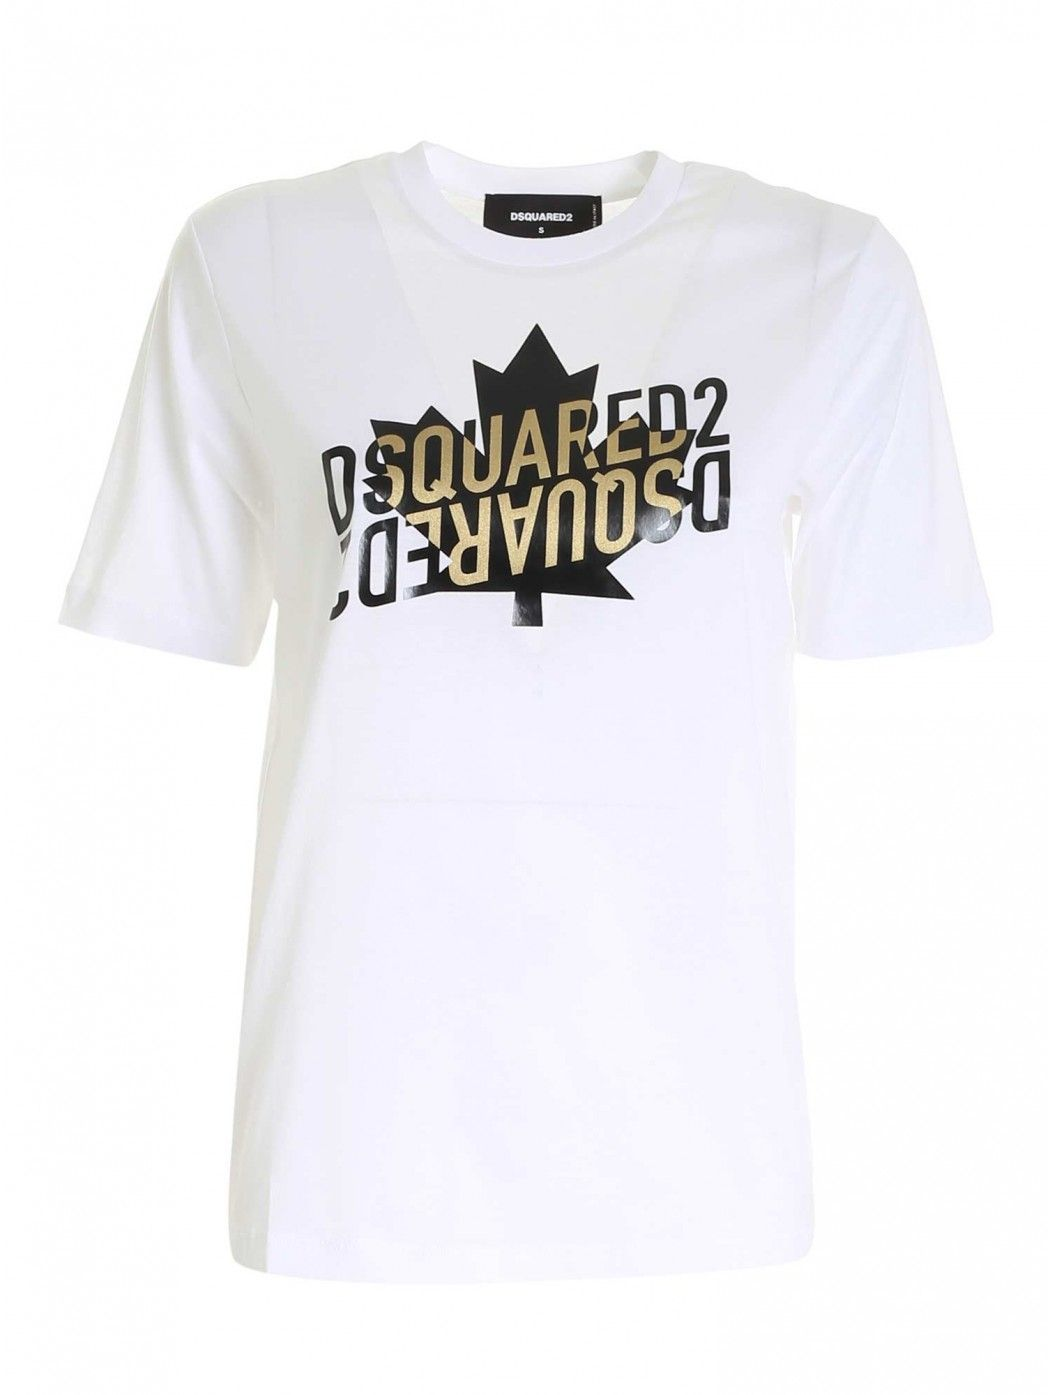 T-SHIRT IN COTONE BIANCO...